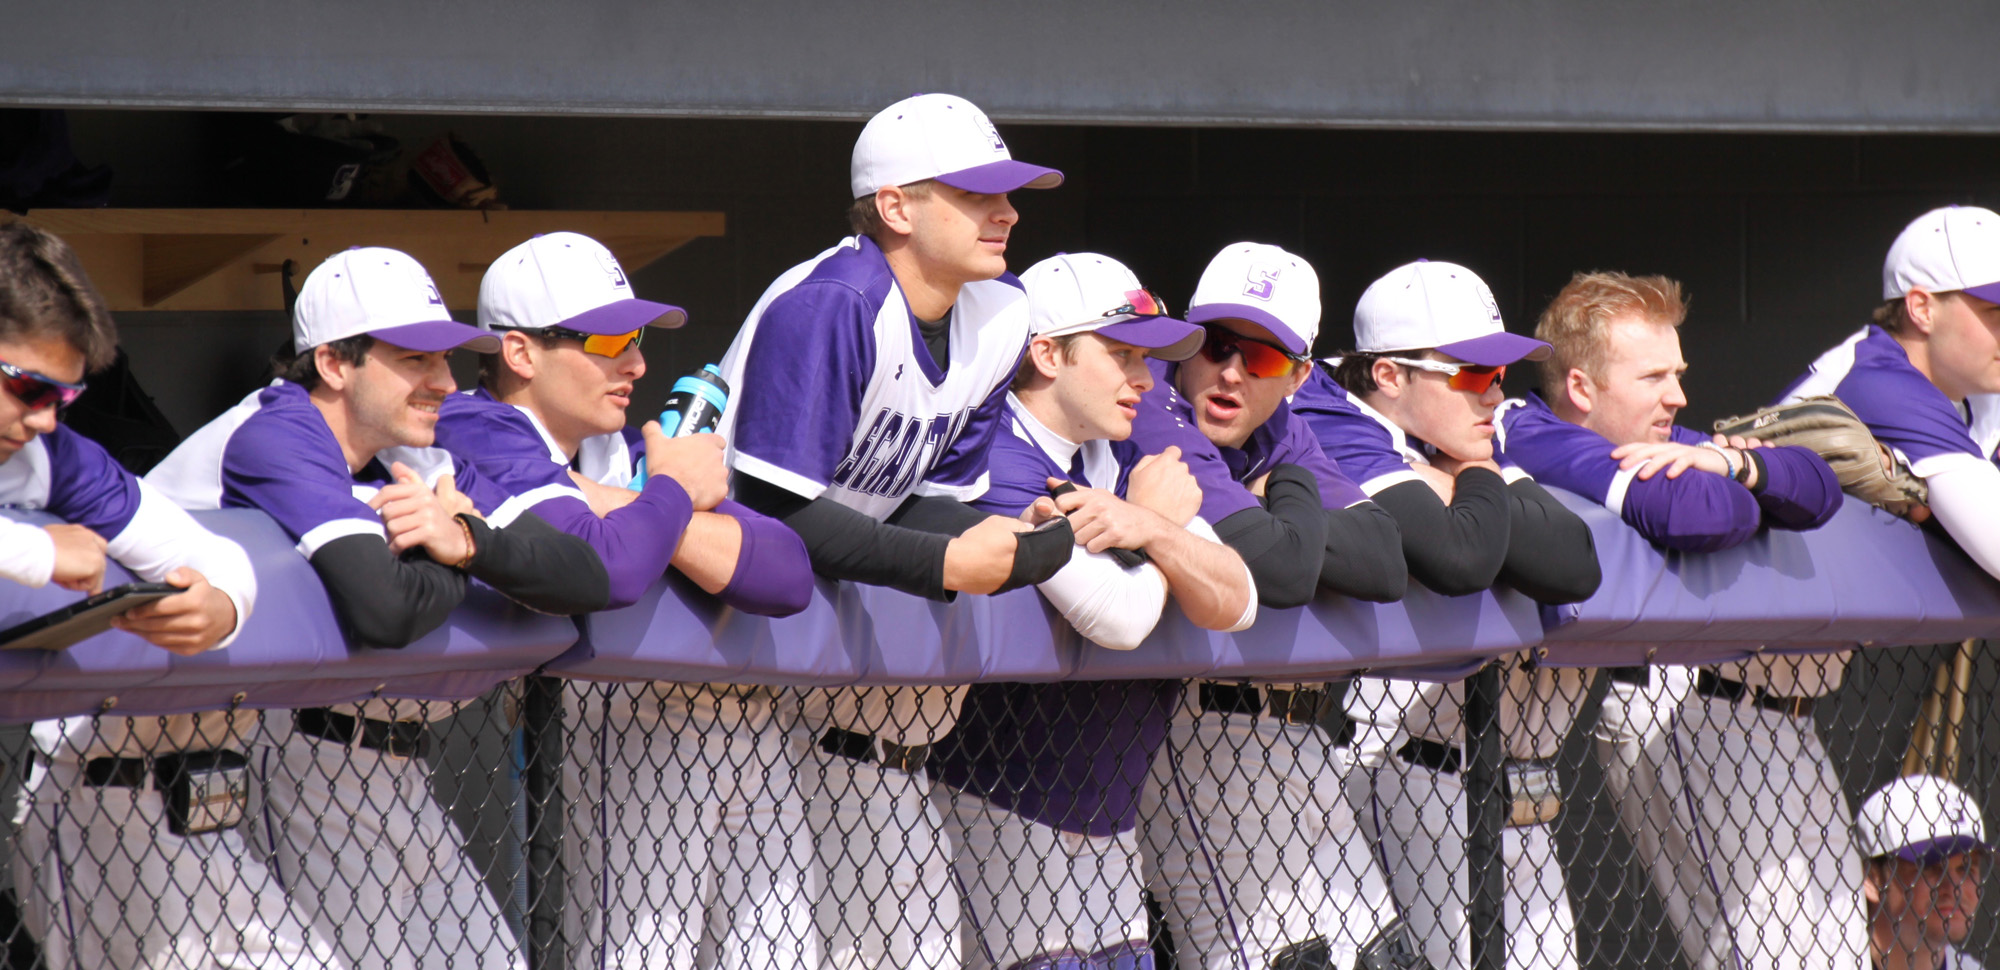 The University of Scranton baseball program has opened a team store that will be open until Sunday, January 19. © Photo by Timothy R. Dougherty / doubleeaglephotography.com